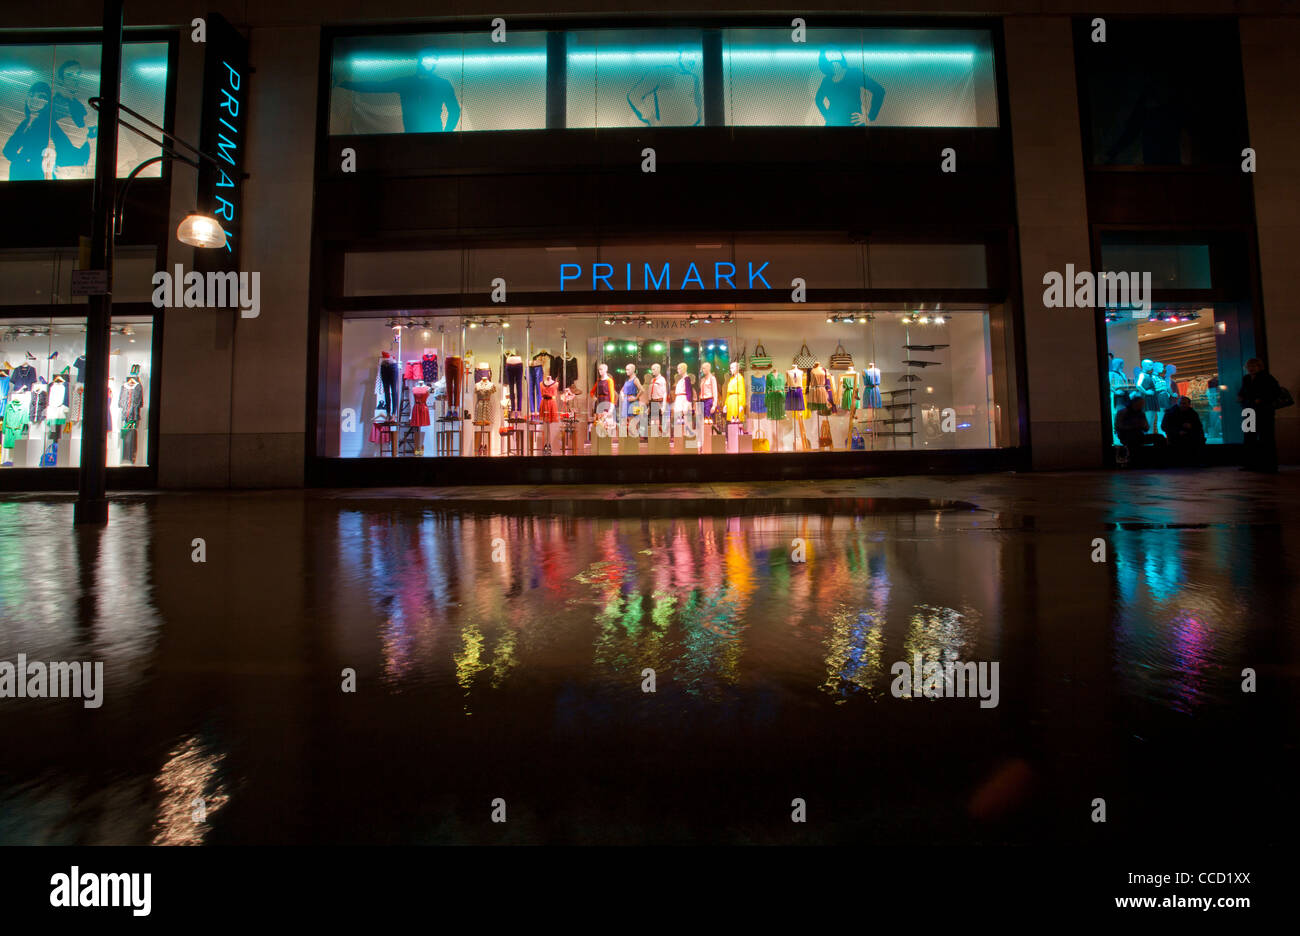 Primark shopfront and reflection in flood water after water mains burst along Oxford Street, London, UK. - Stock Image